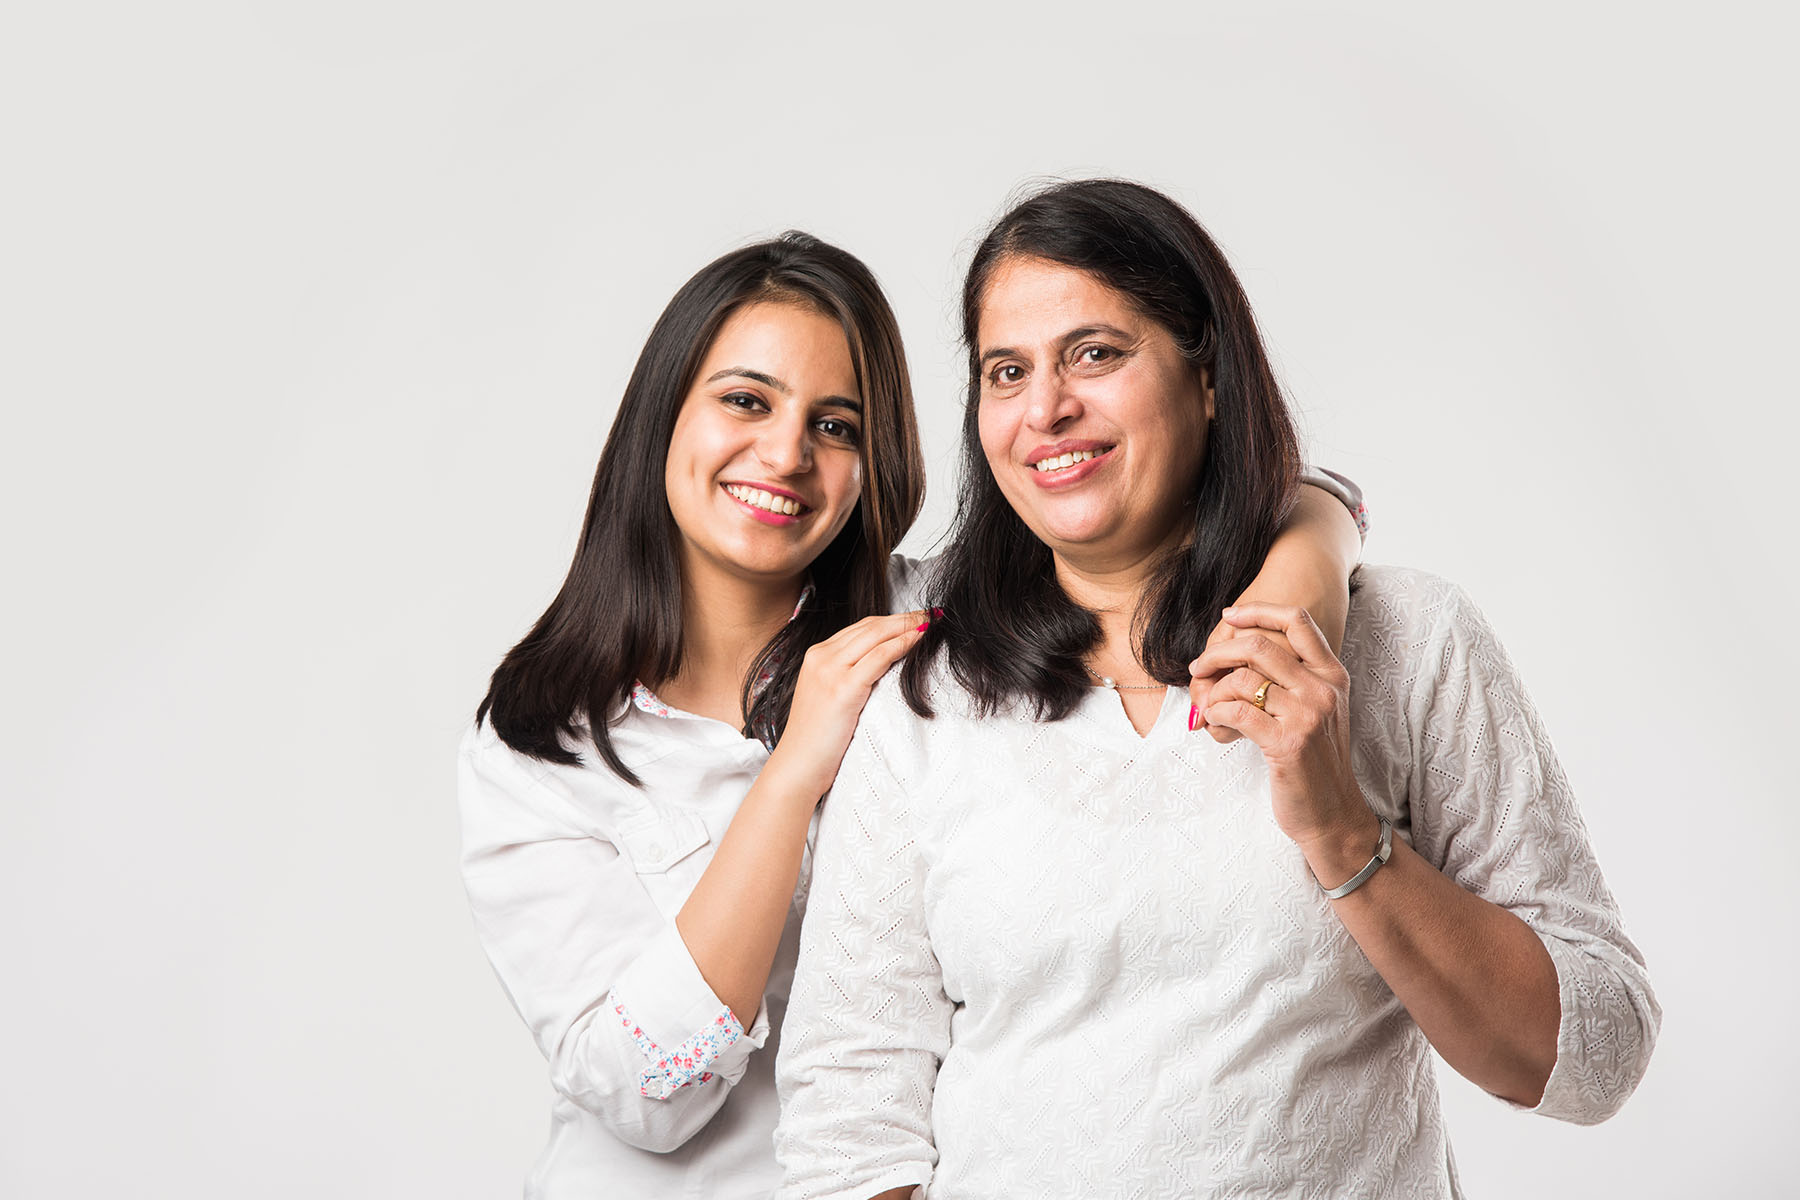 Indian old mother with young Daughter standing isolated over white background, while wearing white top and blue jeans. selective focus